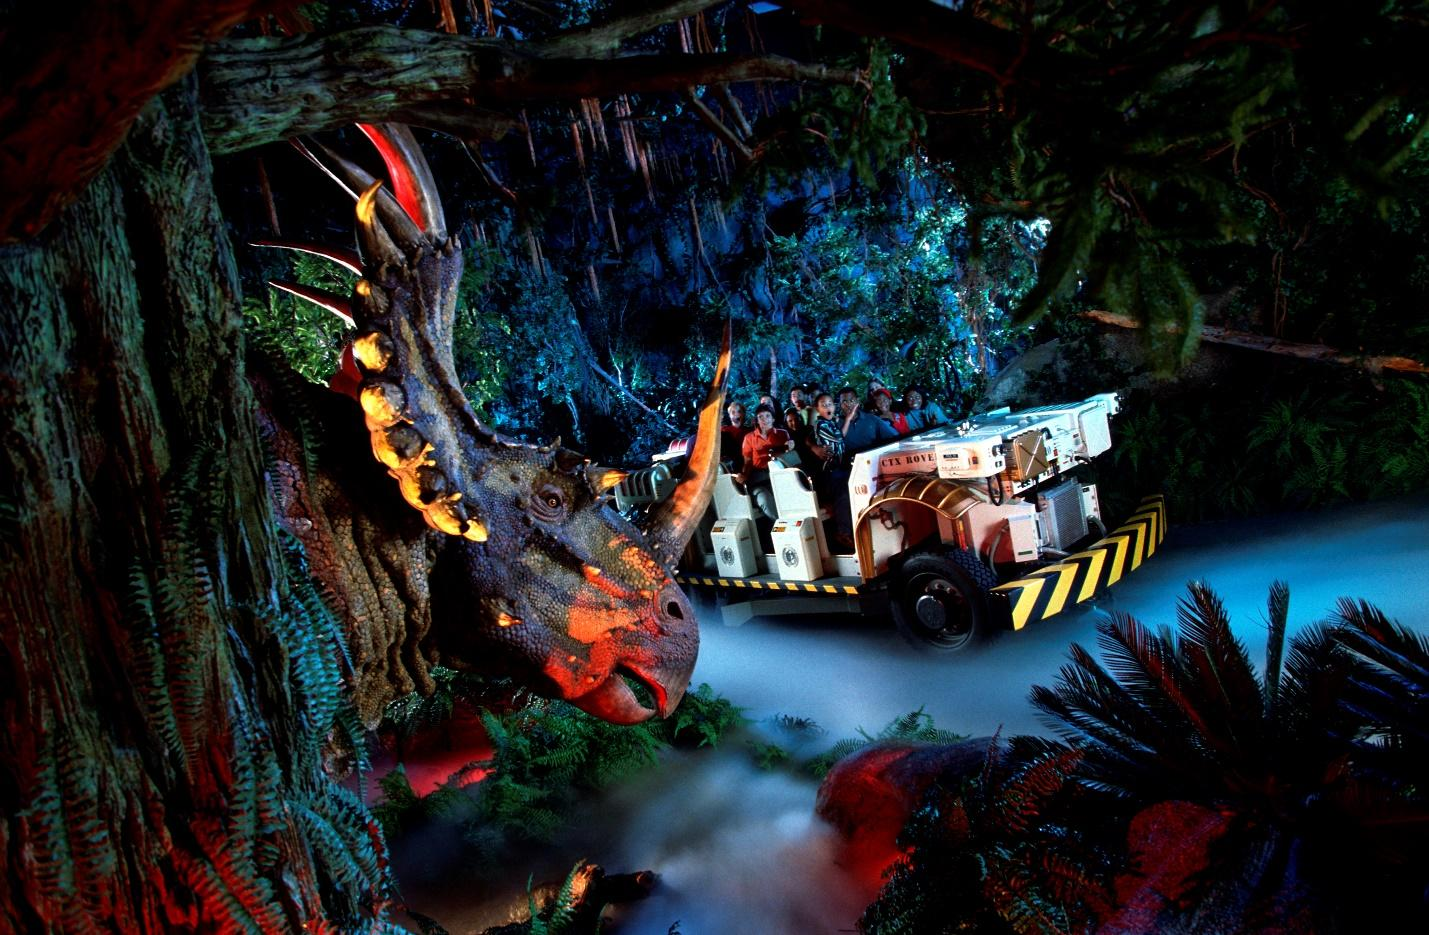 DINOSAUR attraction ride at Disney